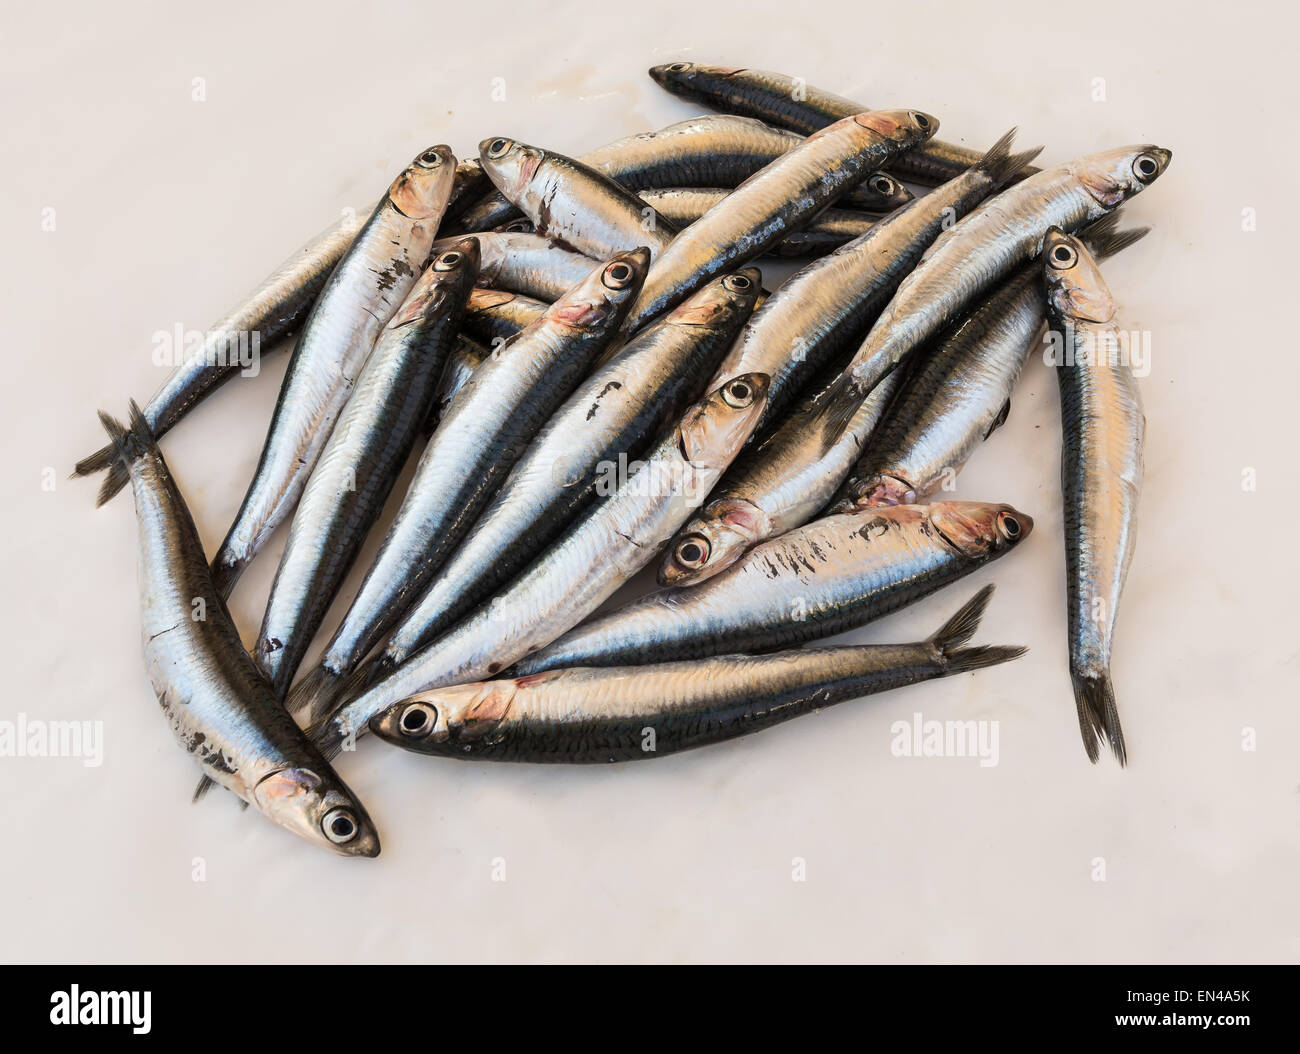 In the picture a set of fresh anchovies of the Mediterranean resting on a white sheet of paper - Stock Image